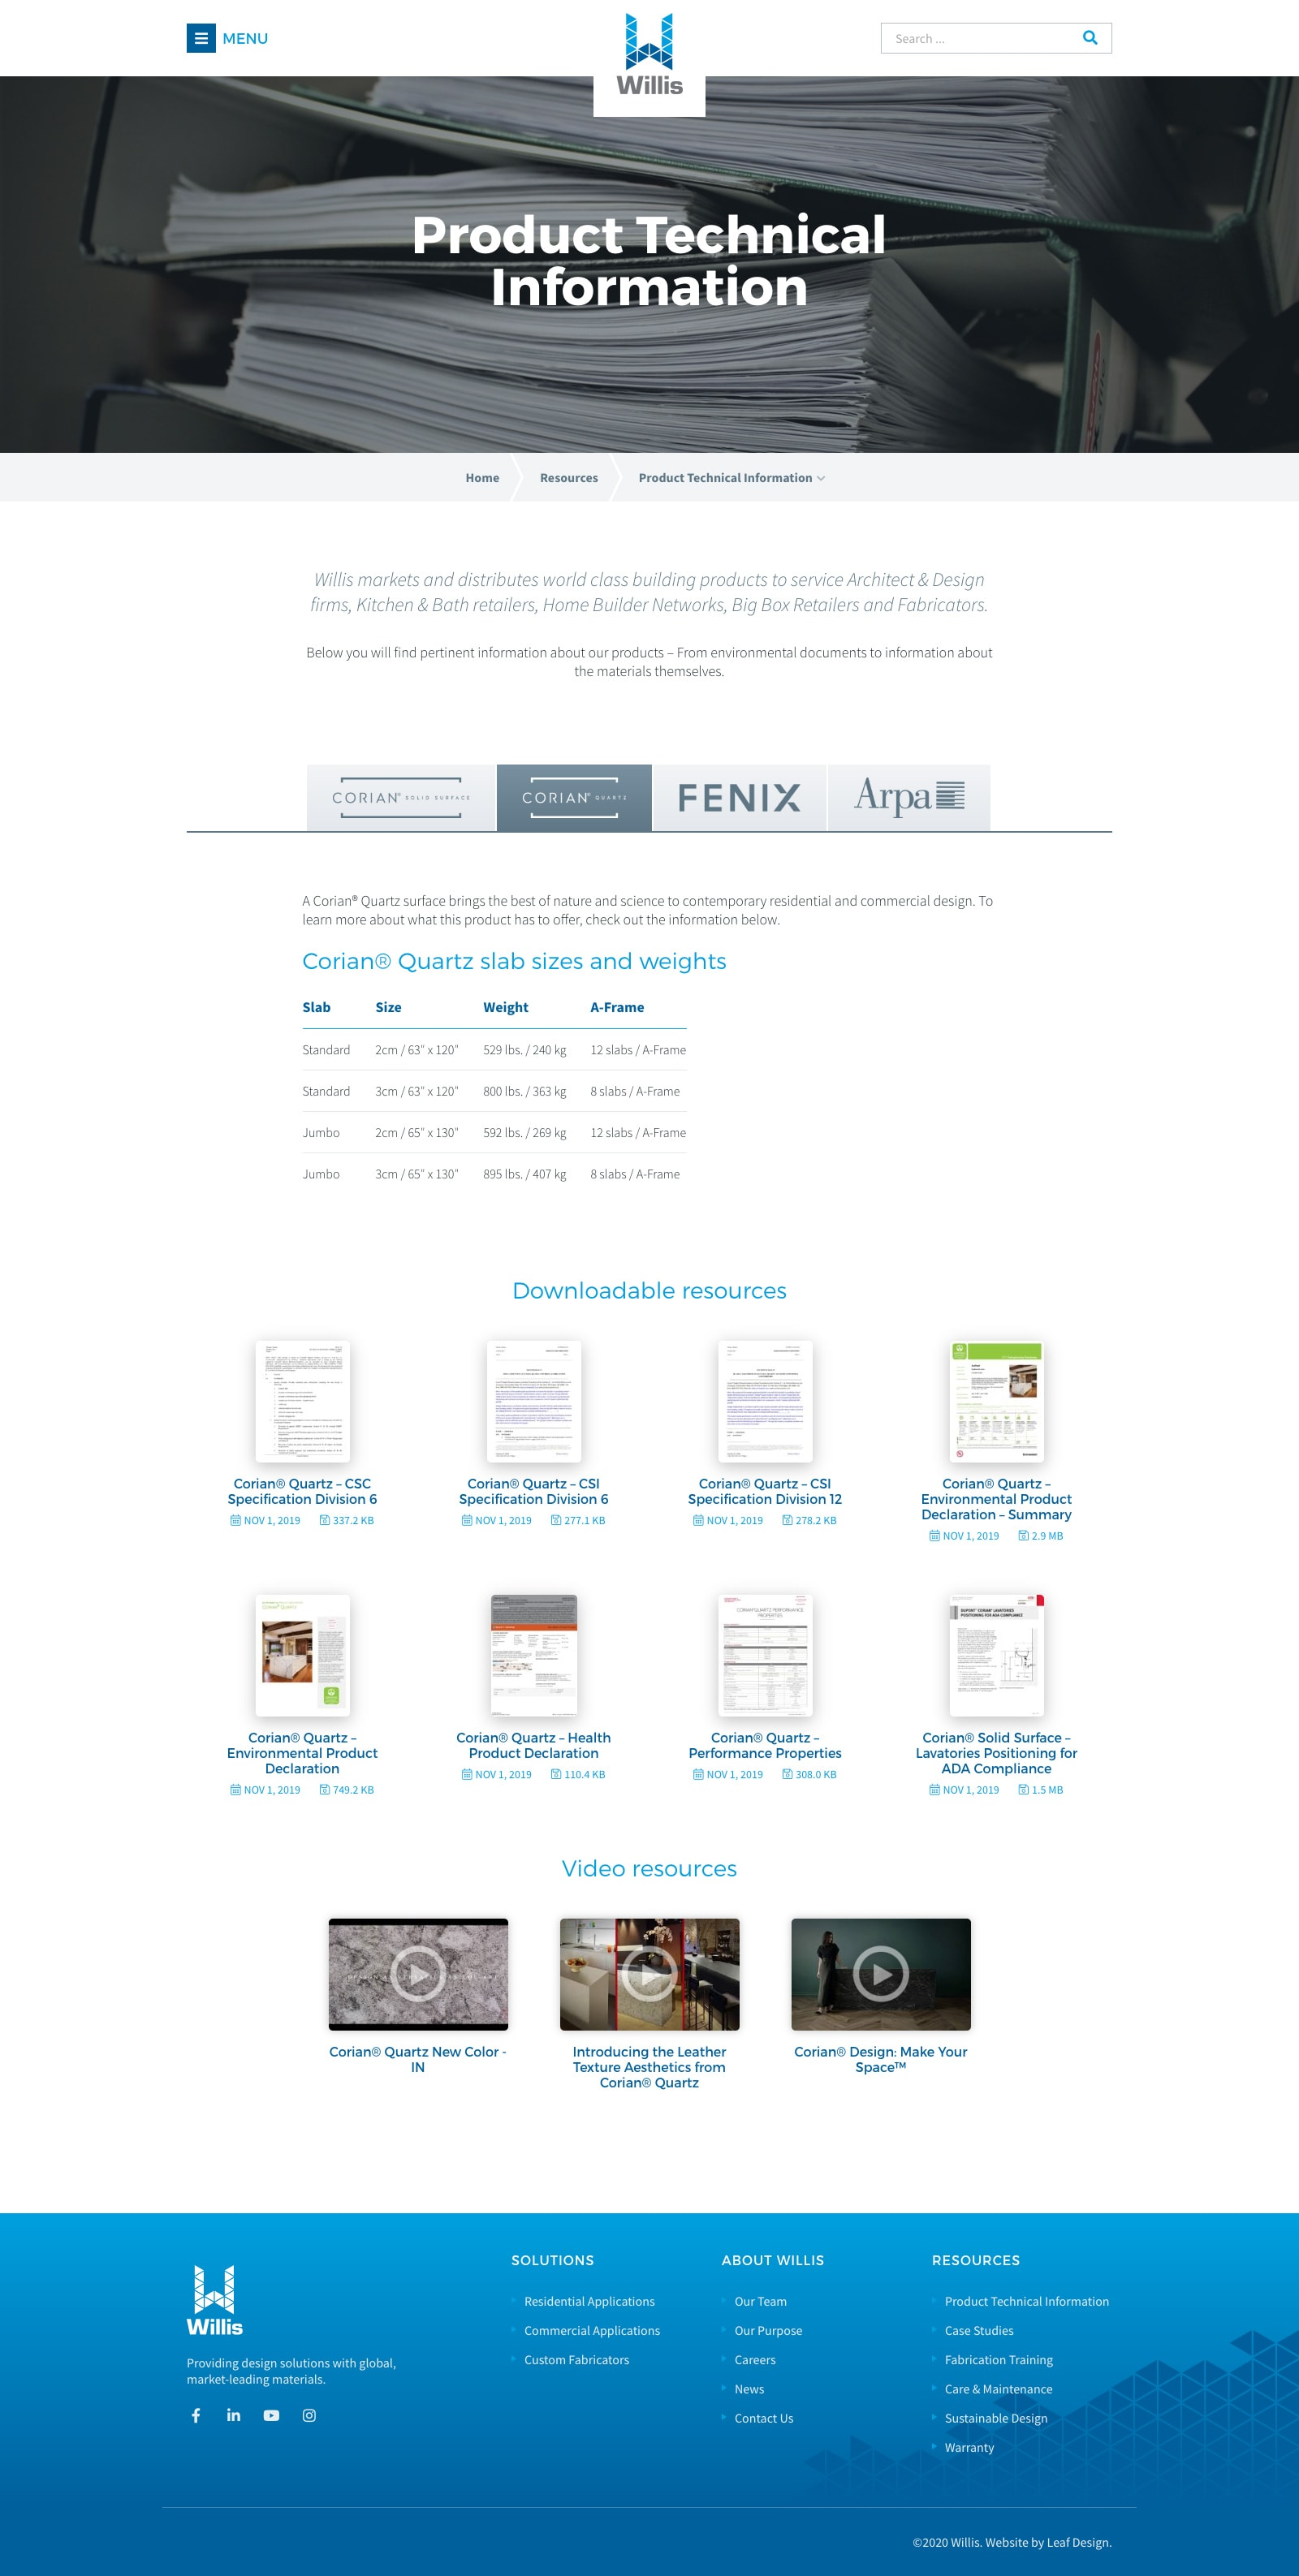 Product Technical Information Subpage Screenshot